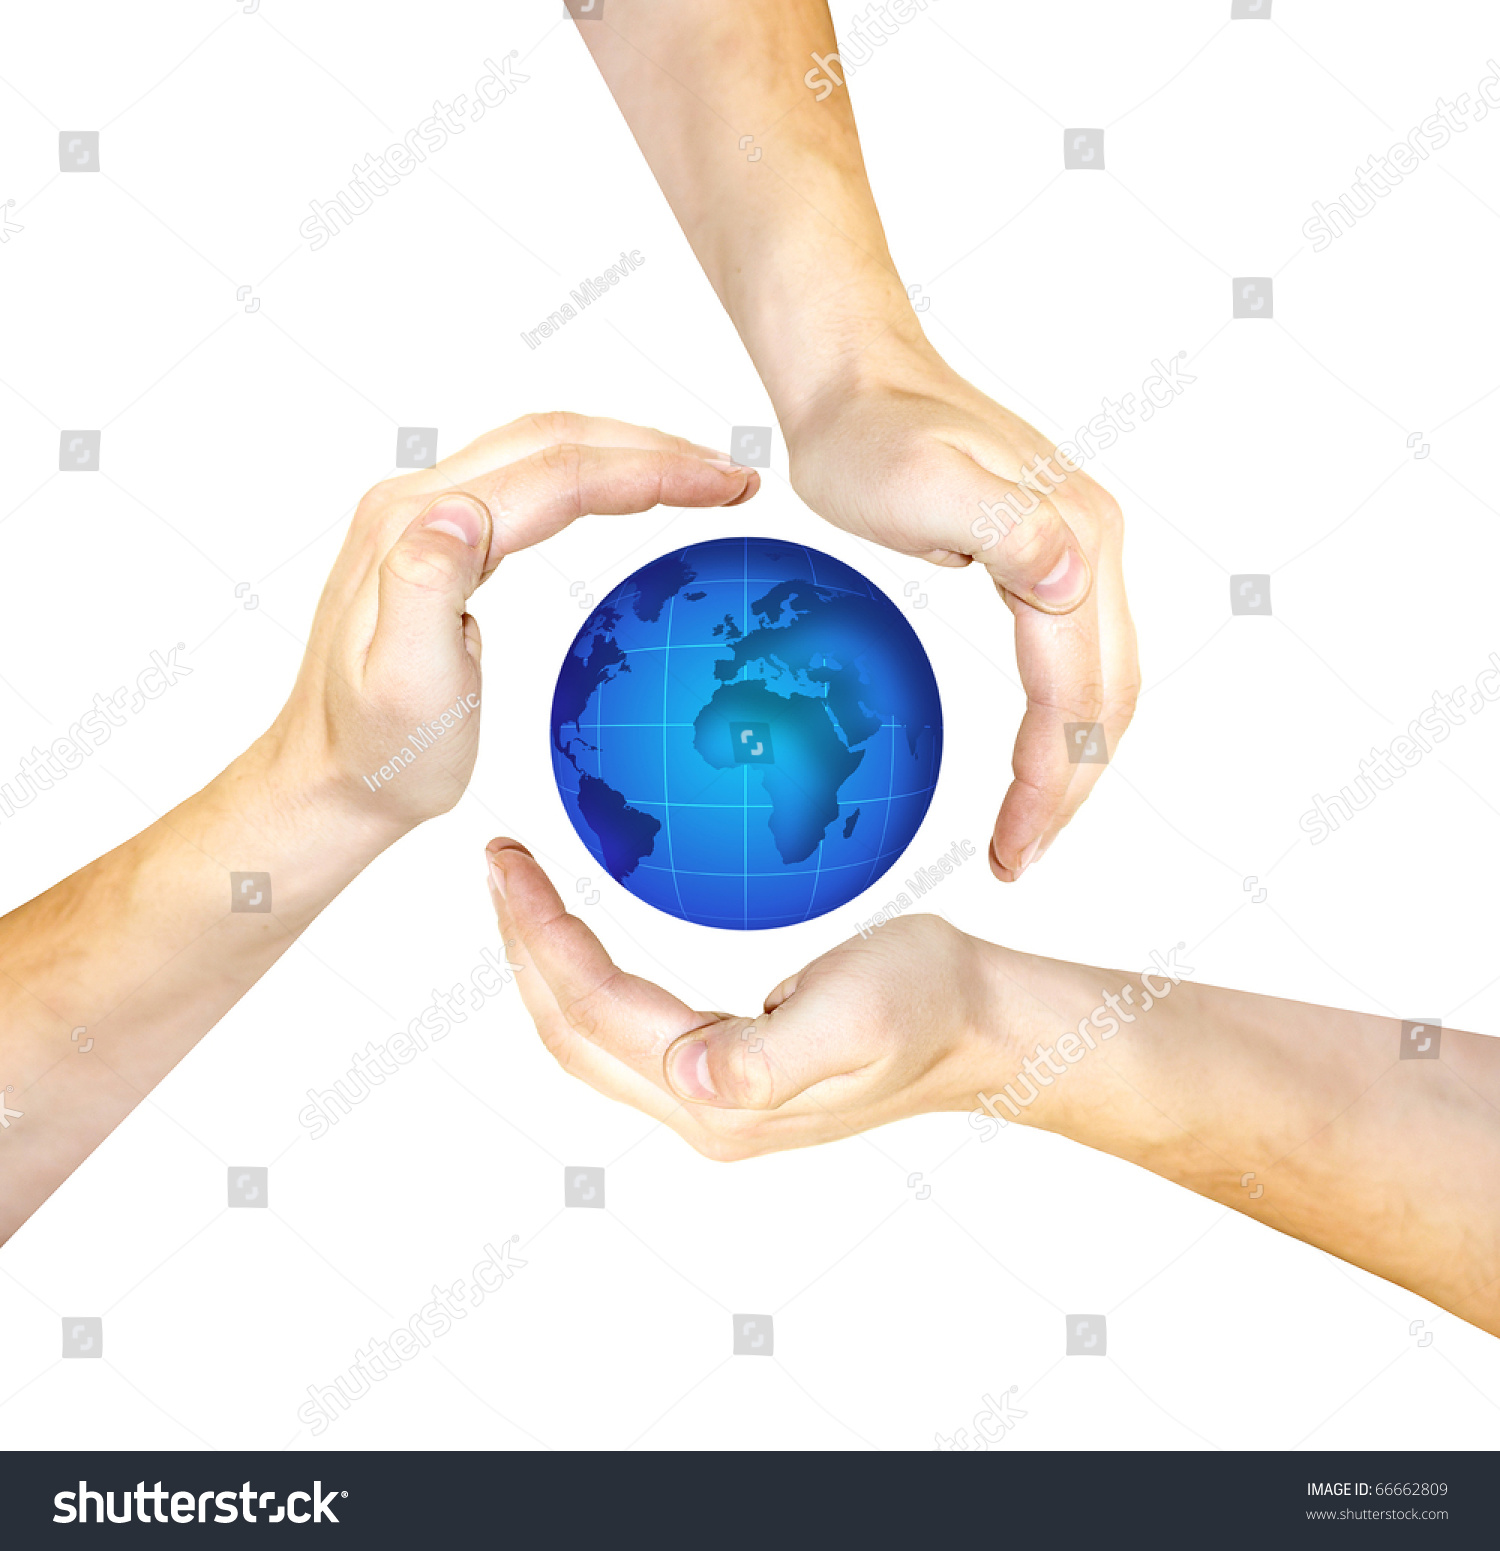 Conceptual safety symbol made hands over stock photo 66662809 conceptual safety symbol made from hands over globe biocorpaavc